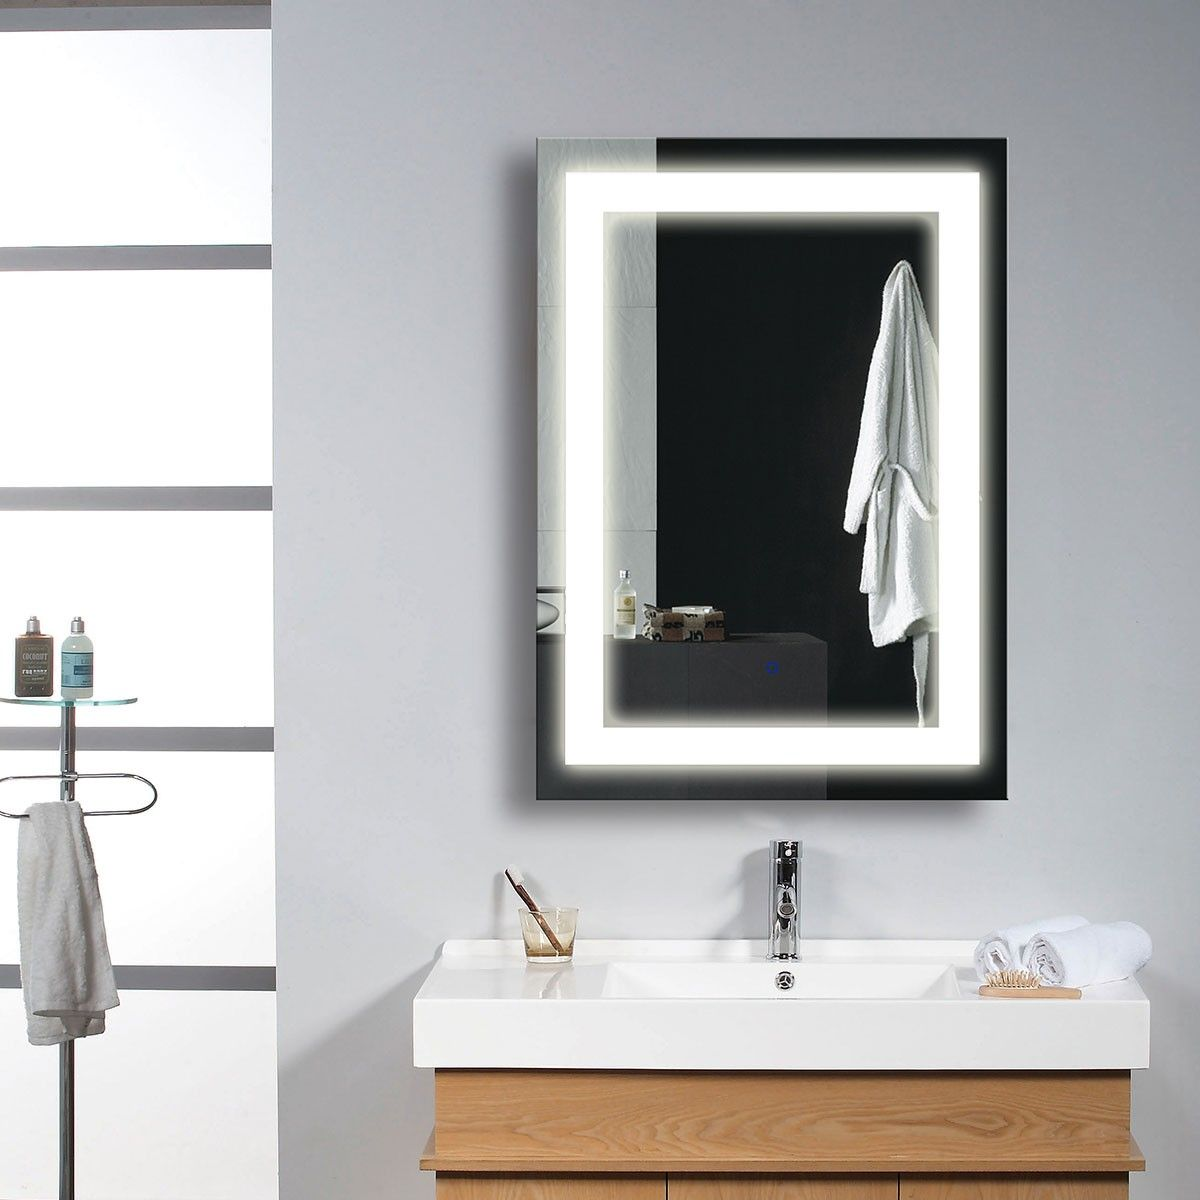 brilliant cabinet choice mirrors bathroom home mirror led of doherty best house